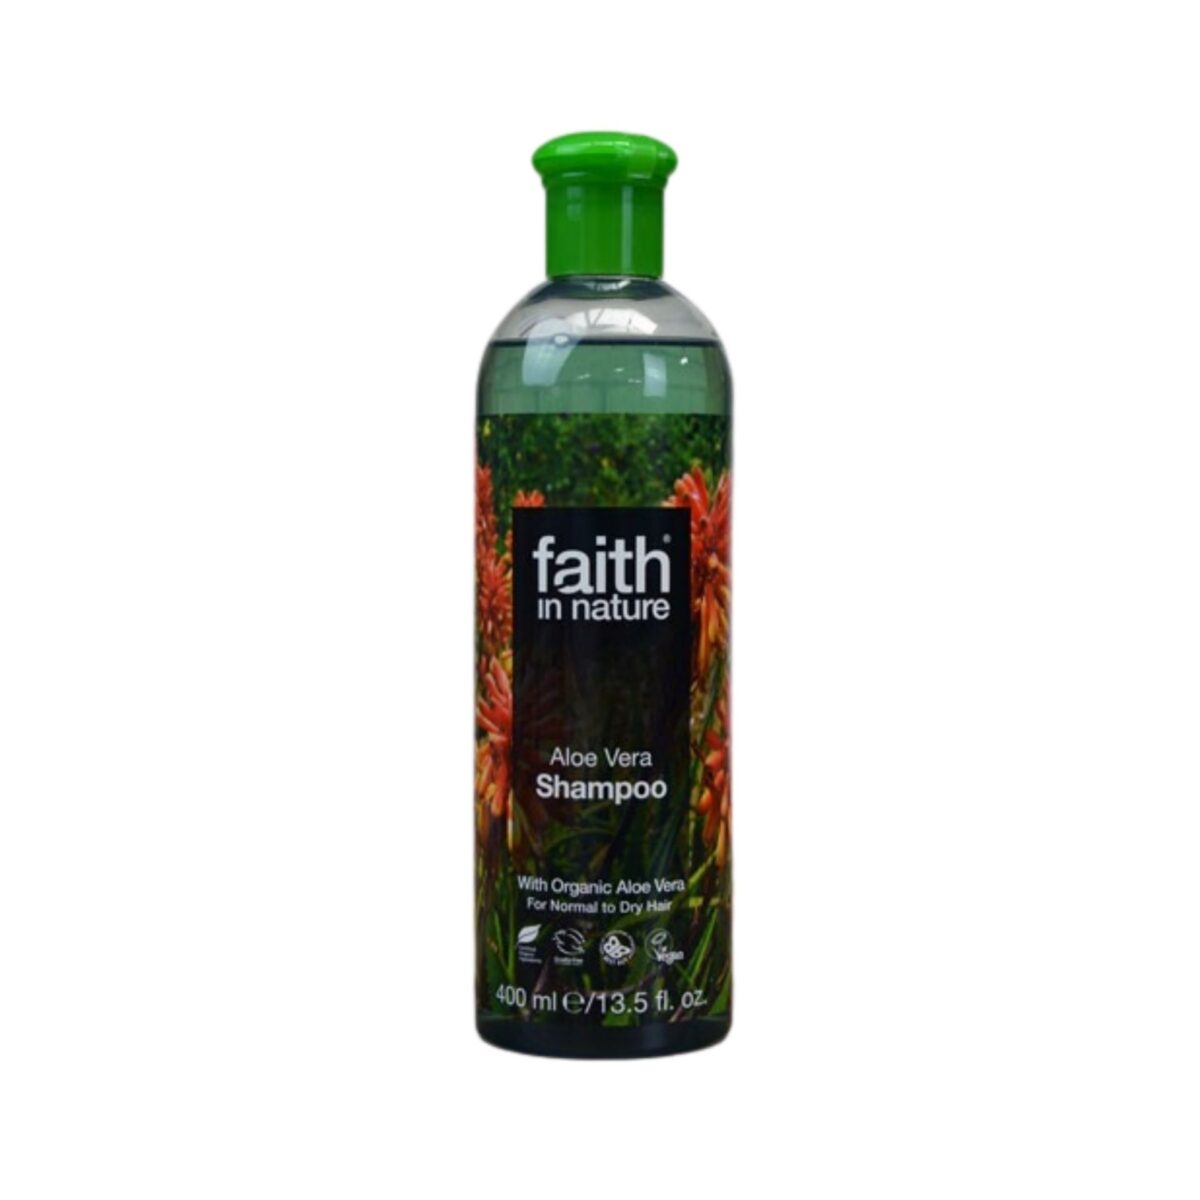 faith-in-nature-aloe-vera-shampoo-400-ml-501400